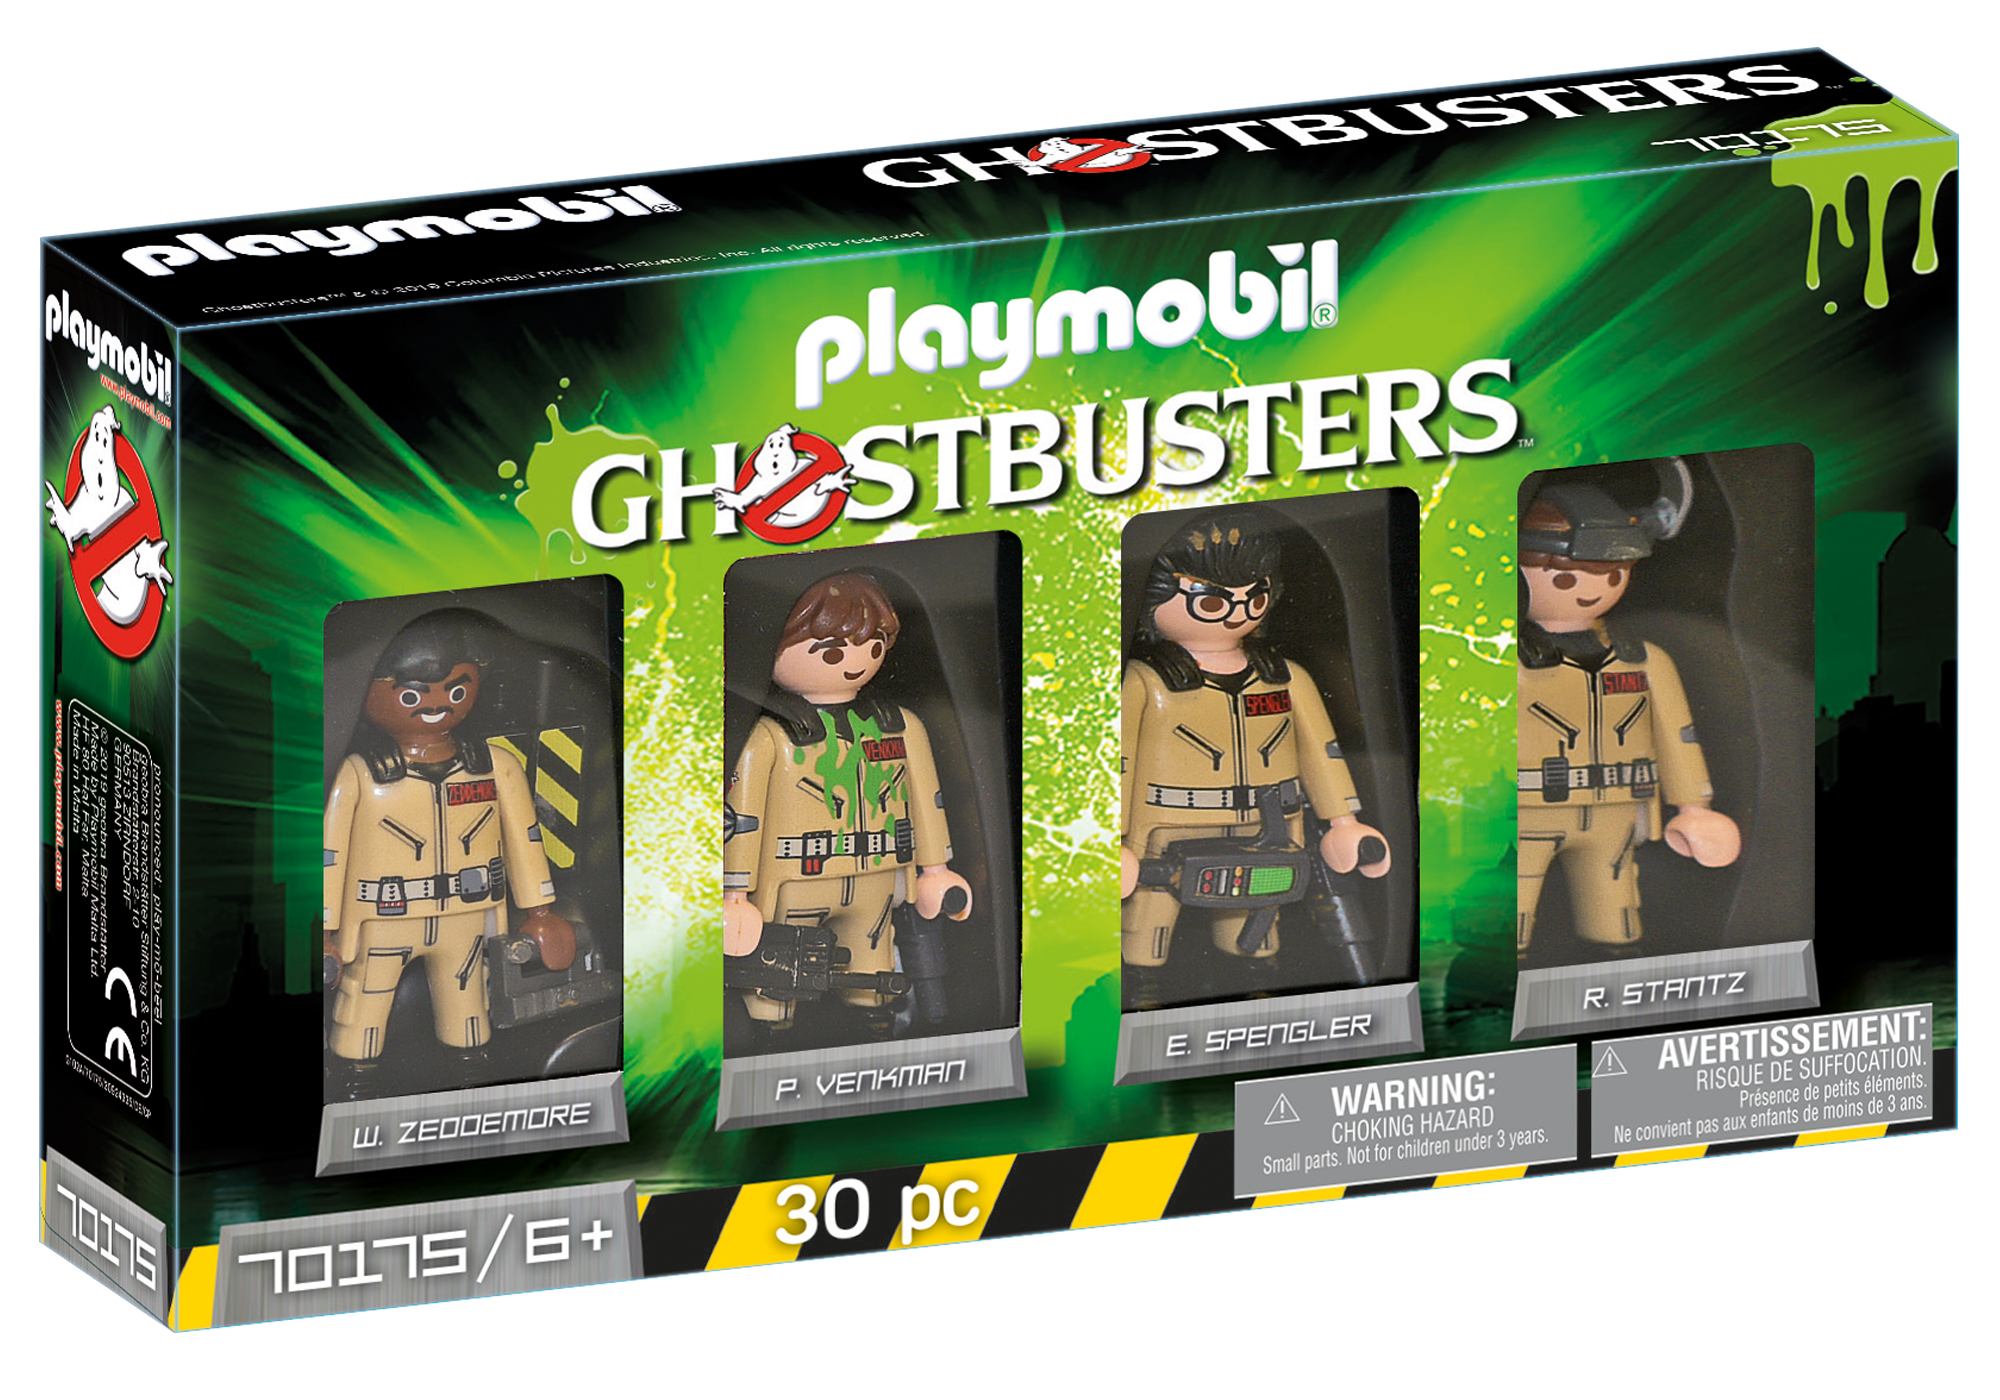 http://media.playmobil.com/i/playmobil/70175_product_box_front/Ghostbusters™ Figures SetGhostbusters™